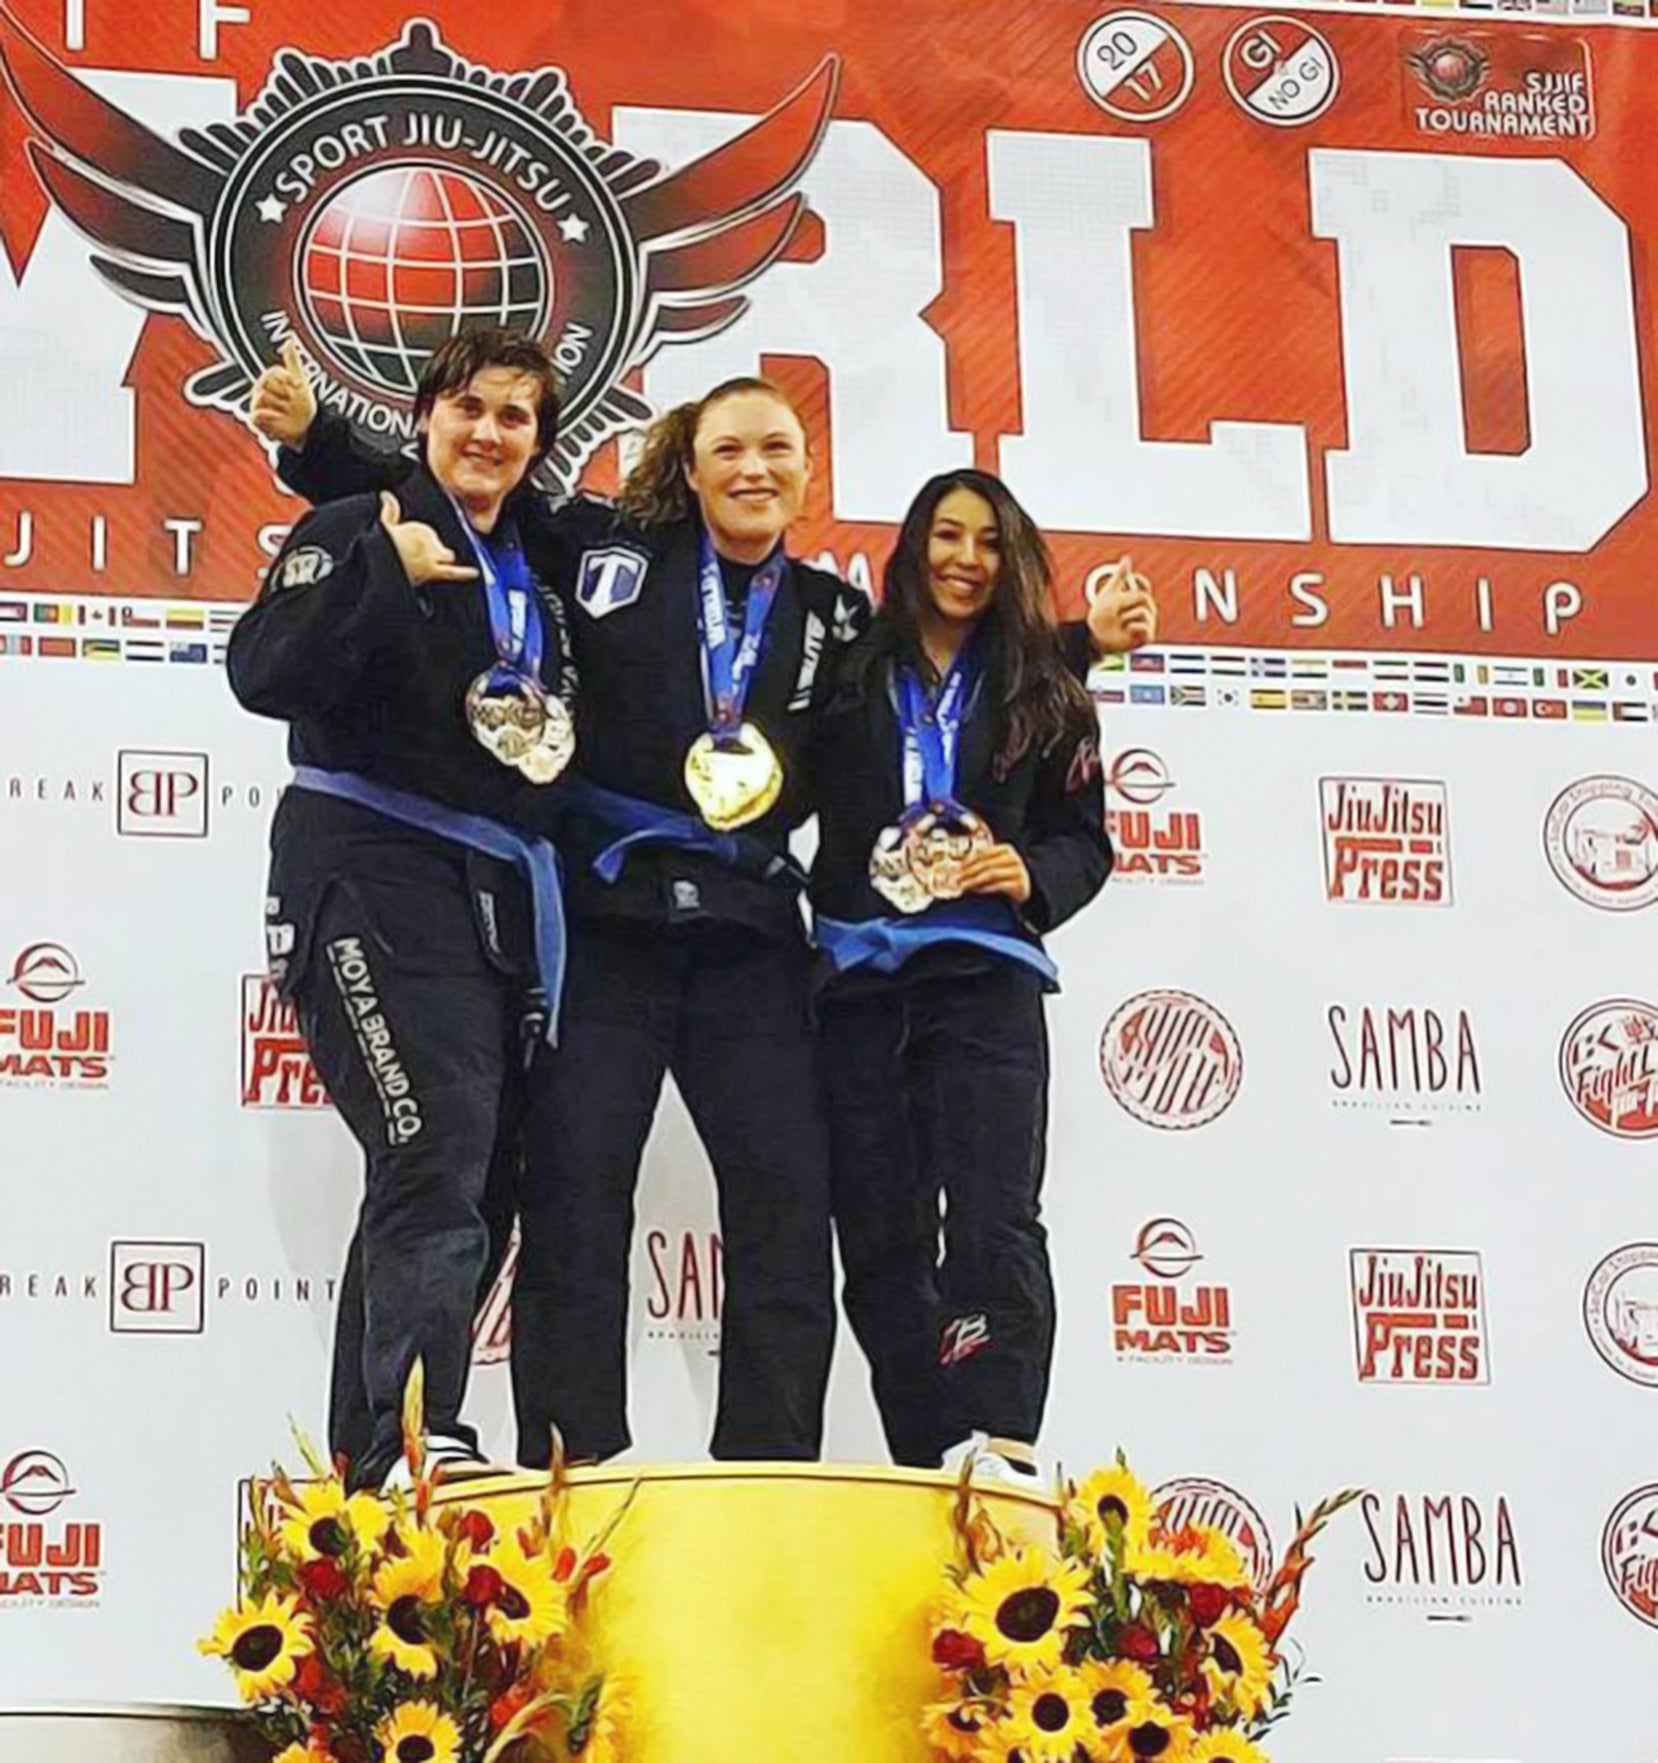 Elite Sports Team Elite Bjj Fighter Michelle Nicole Dunchus Image6